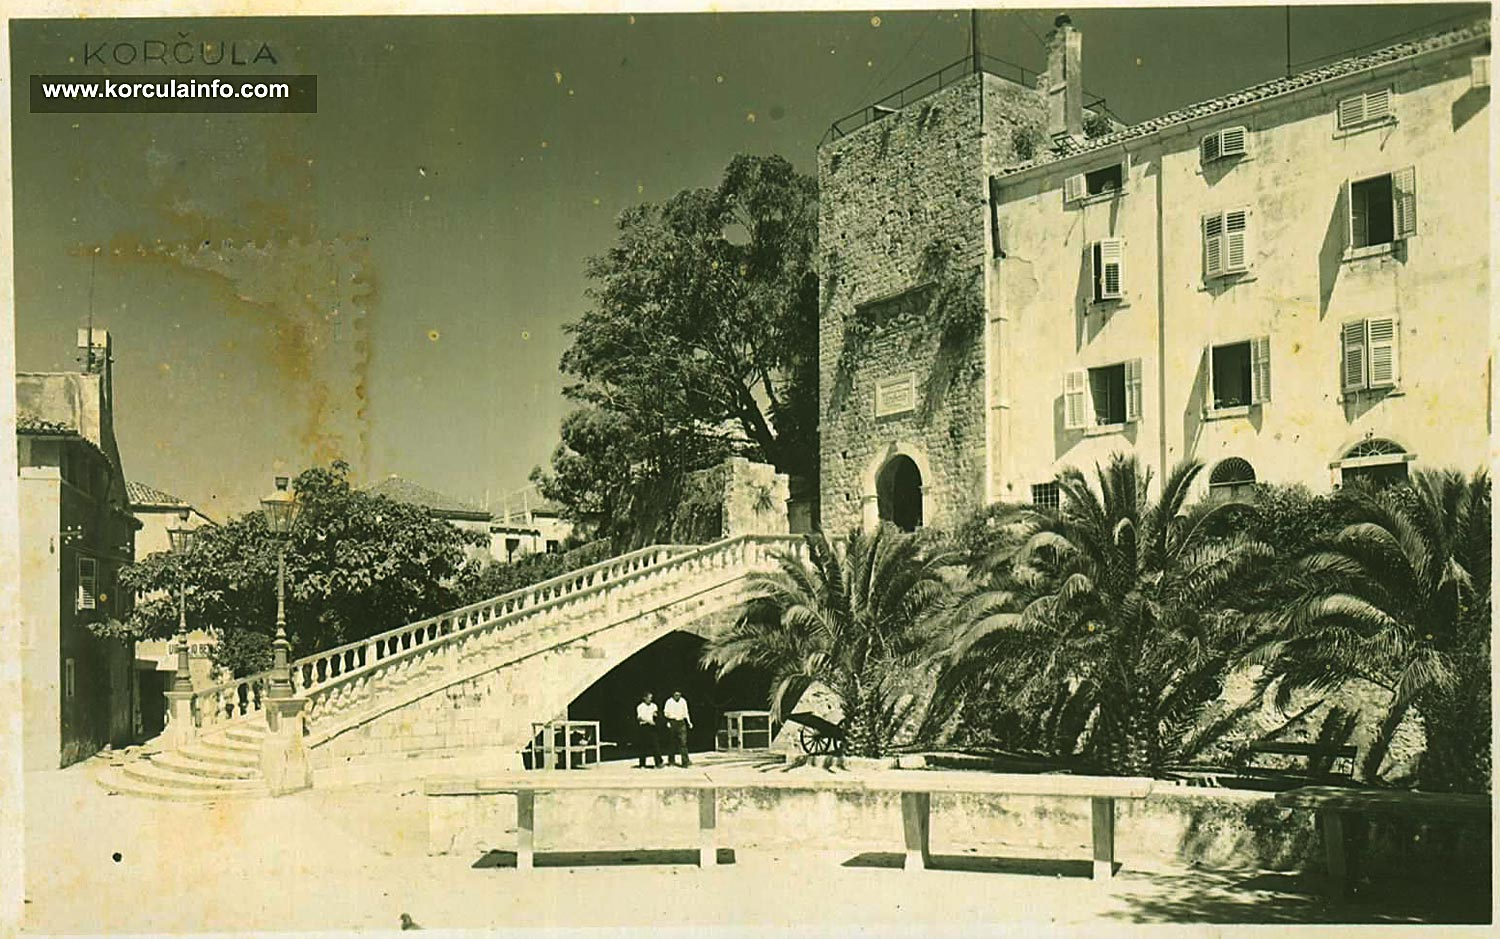 Large Revelin Tower - photo from mid 1930s